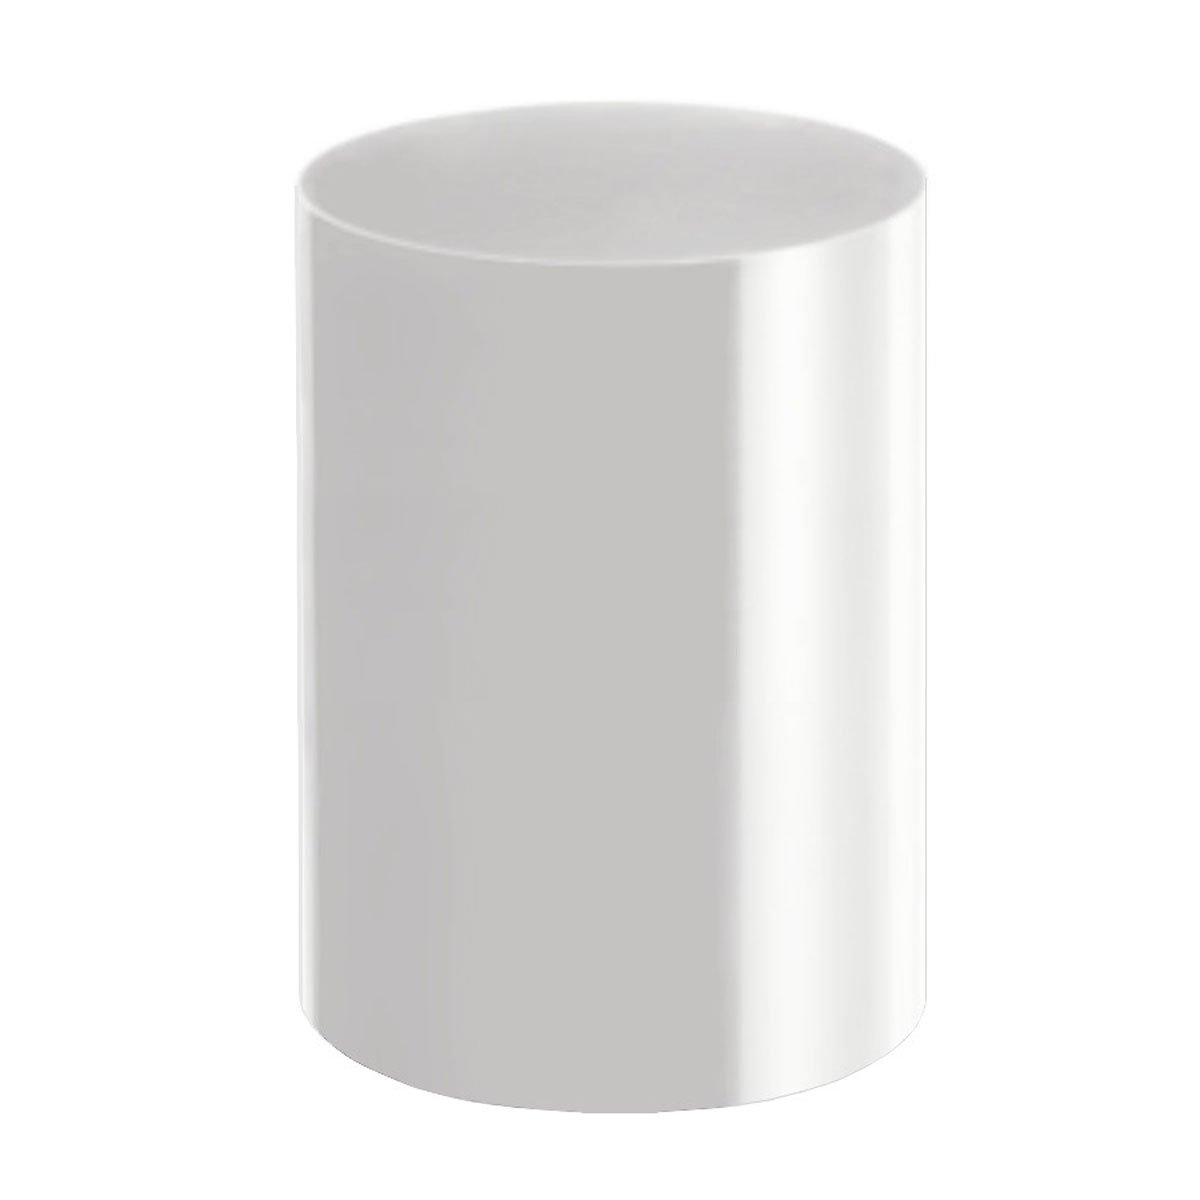 Kartell 467003 - Gettacarte, colore bianco